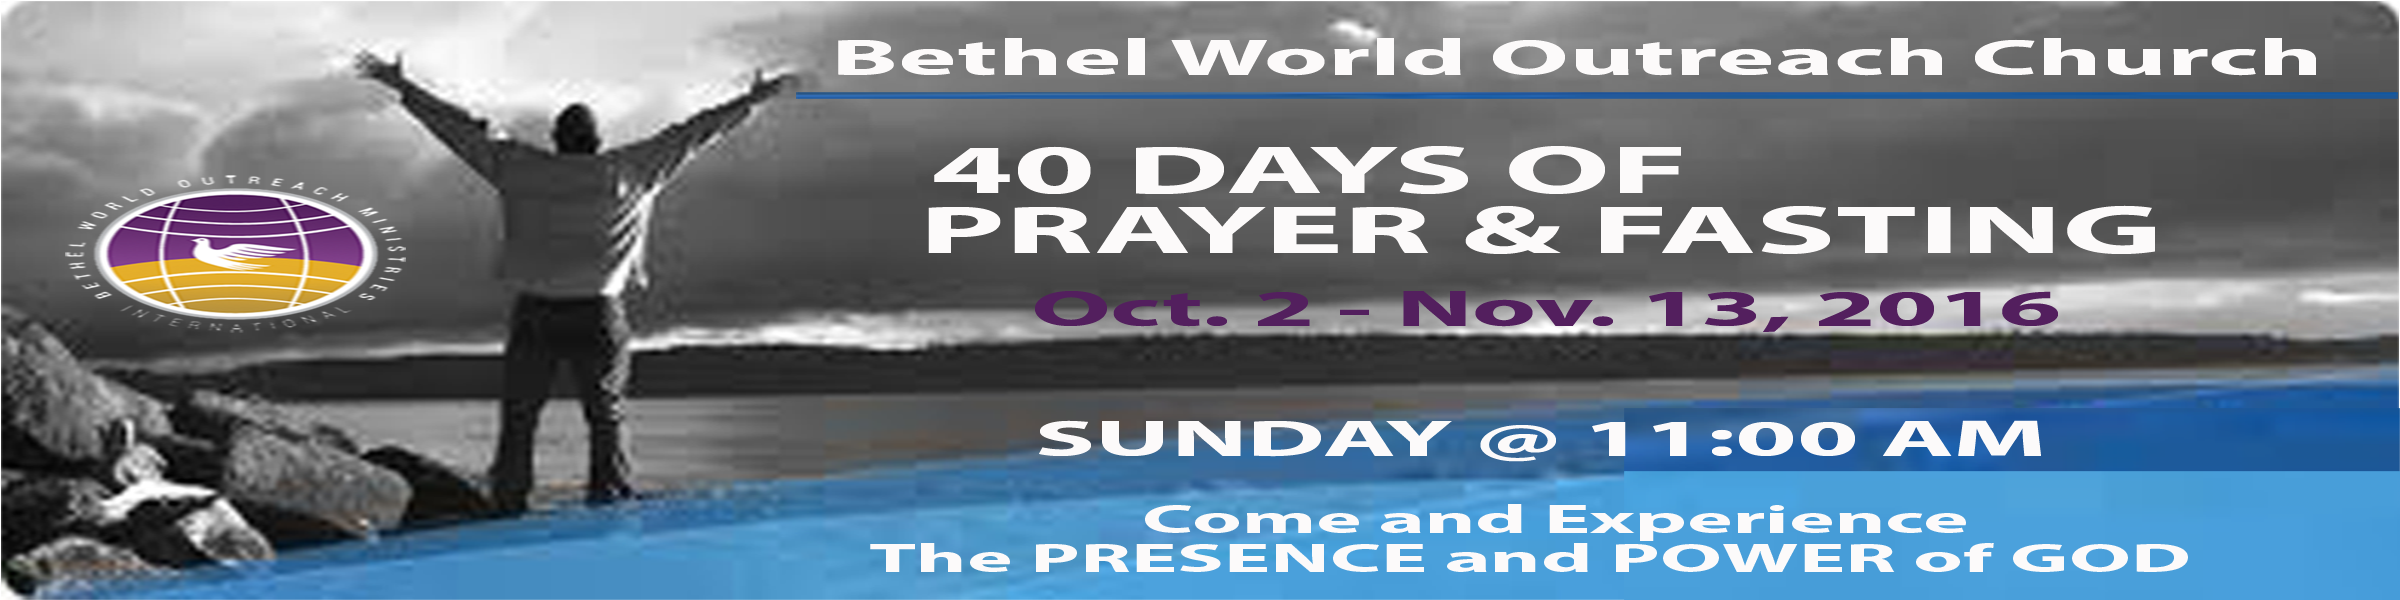 40-days-of-prayer-and-fasting